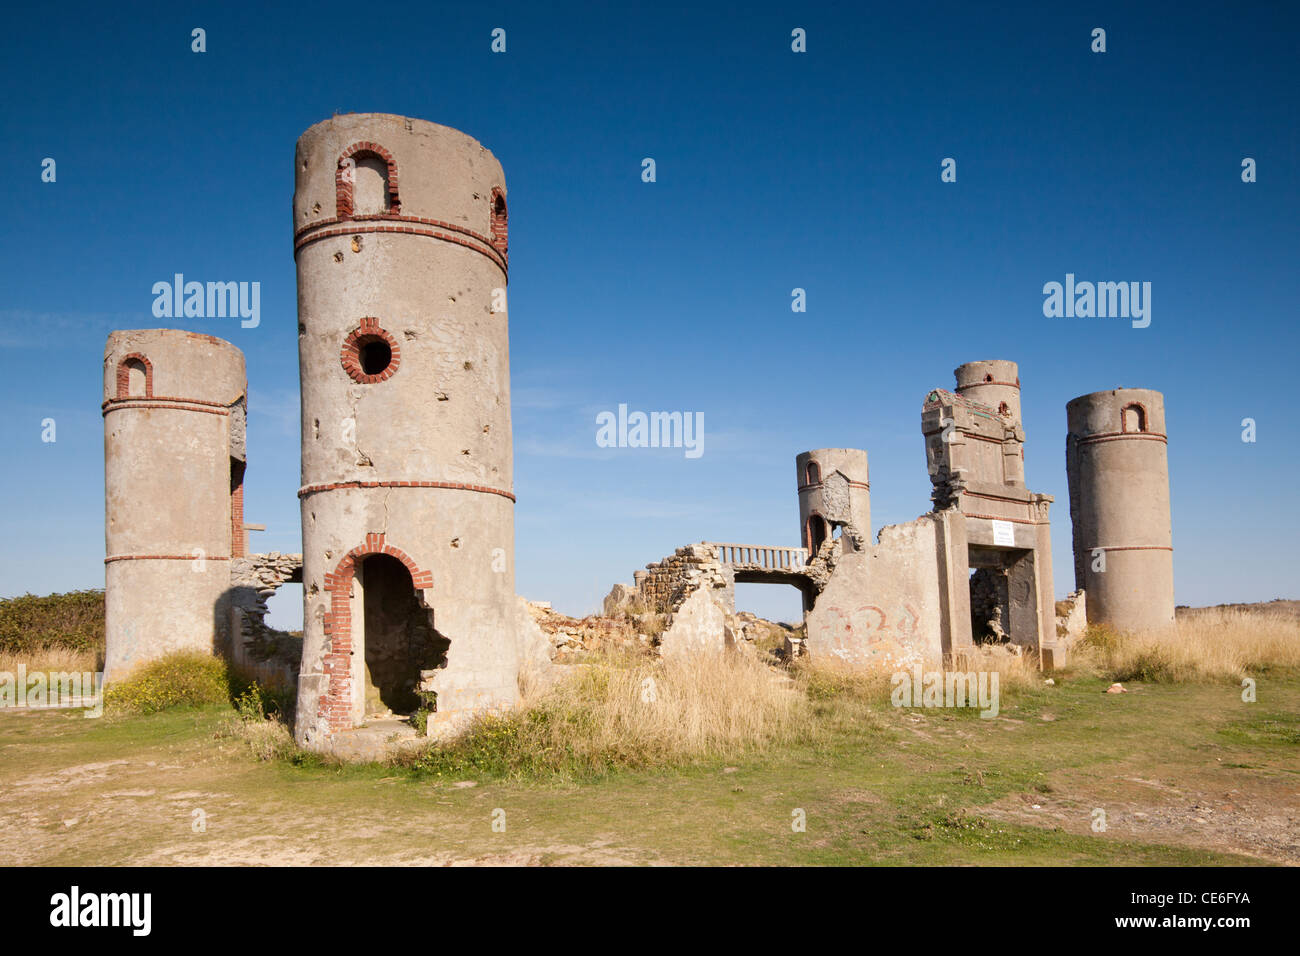 The ruins of the Manoir de Saint-Pol Roux at Camaret sur Mer, Brittany, France. - Stock Image